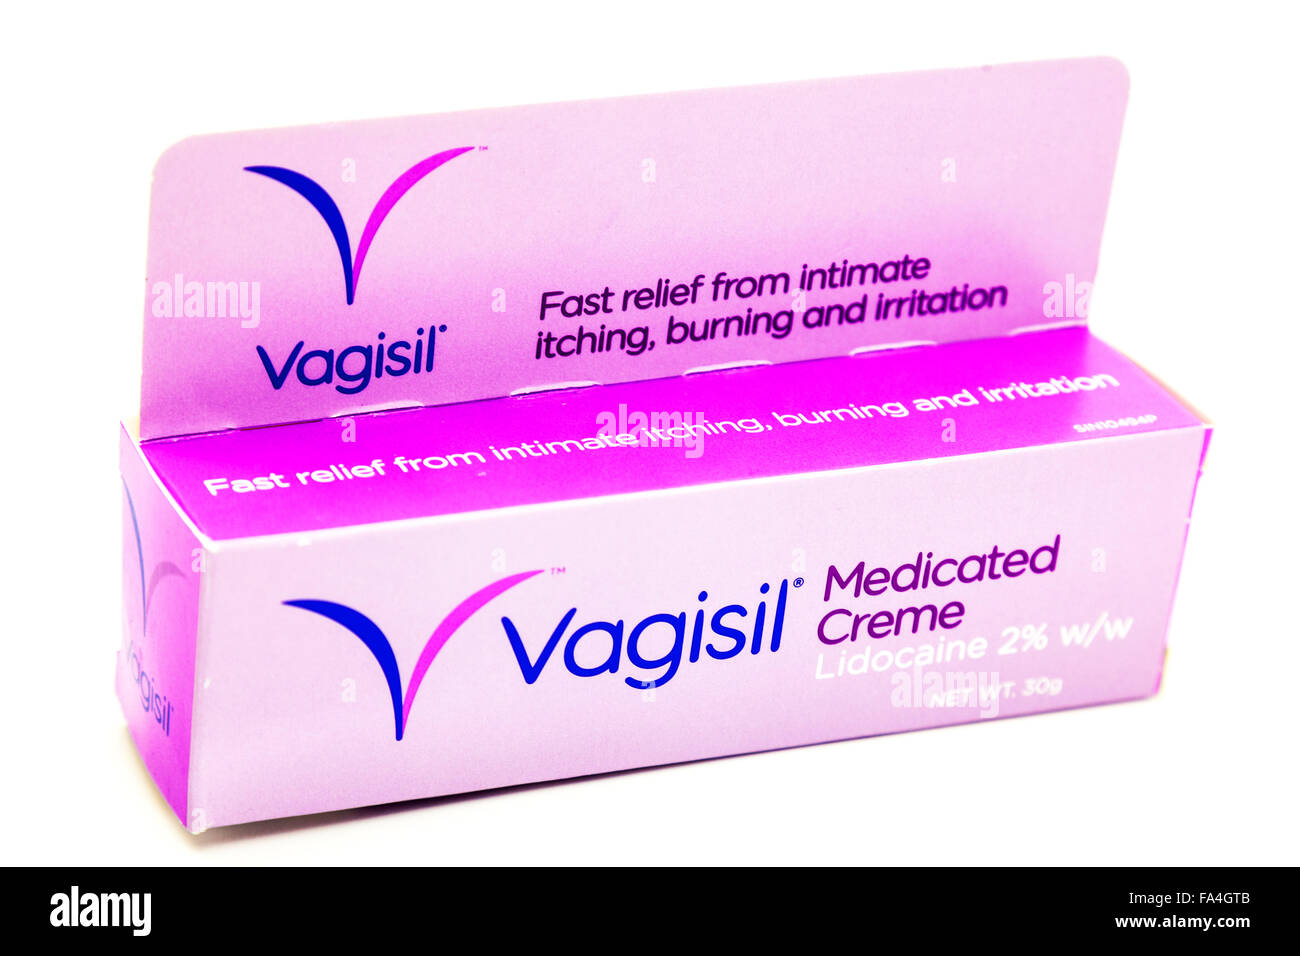 Vagisil medicated cream feminine genital itch itching thrush relief Cutout cut out white background isolated copy - Stock Image